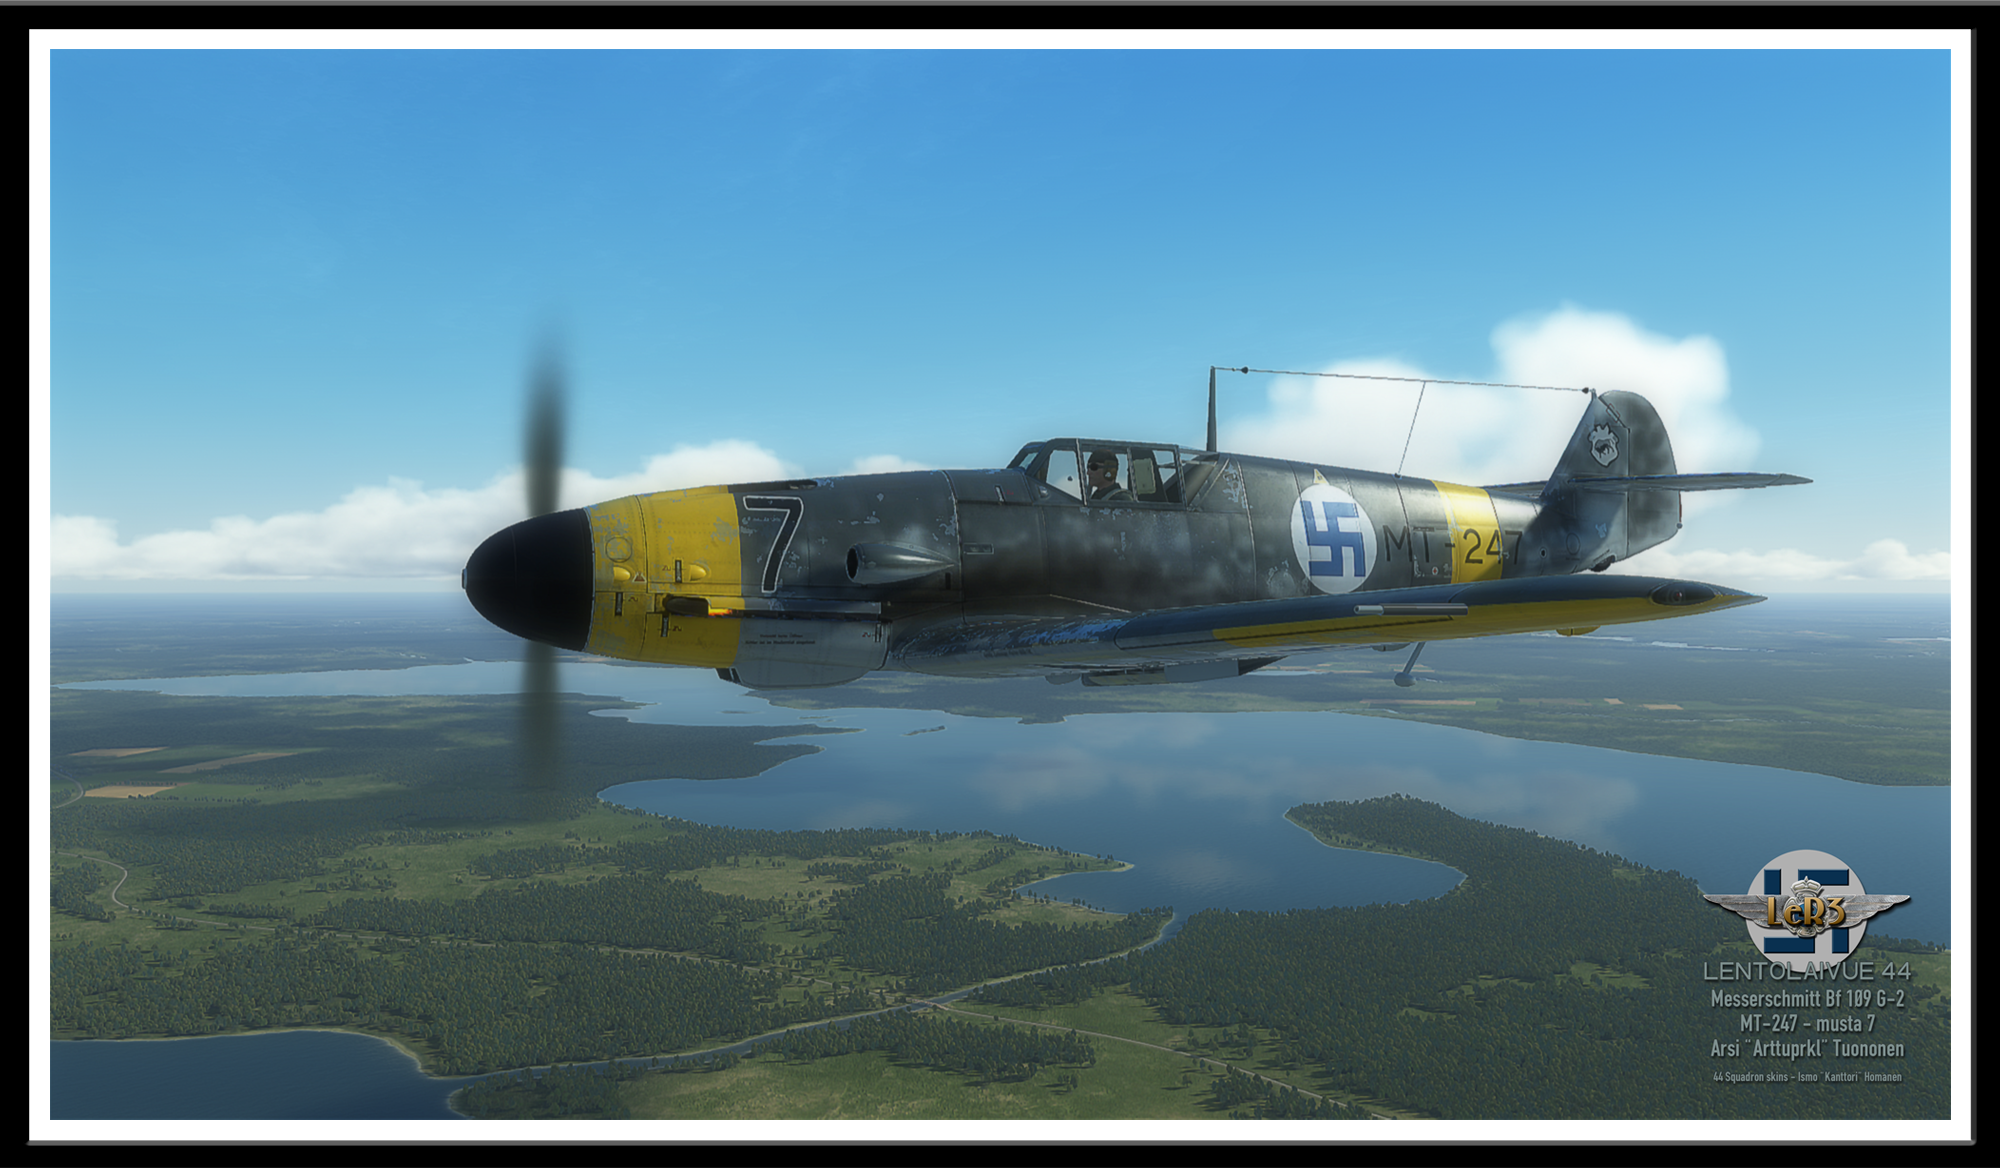 Messerschmitt Bf 109 G-2 - Lentorykmentti 3 poster example (with the screen resolution).